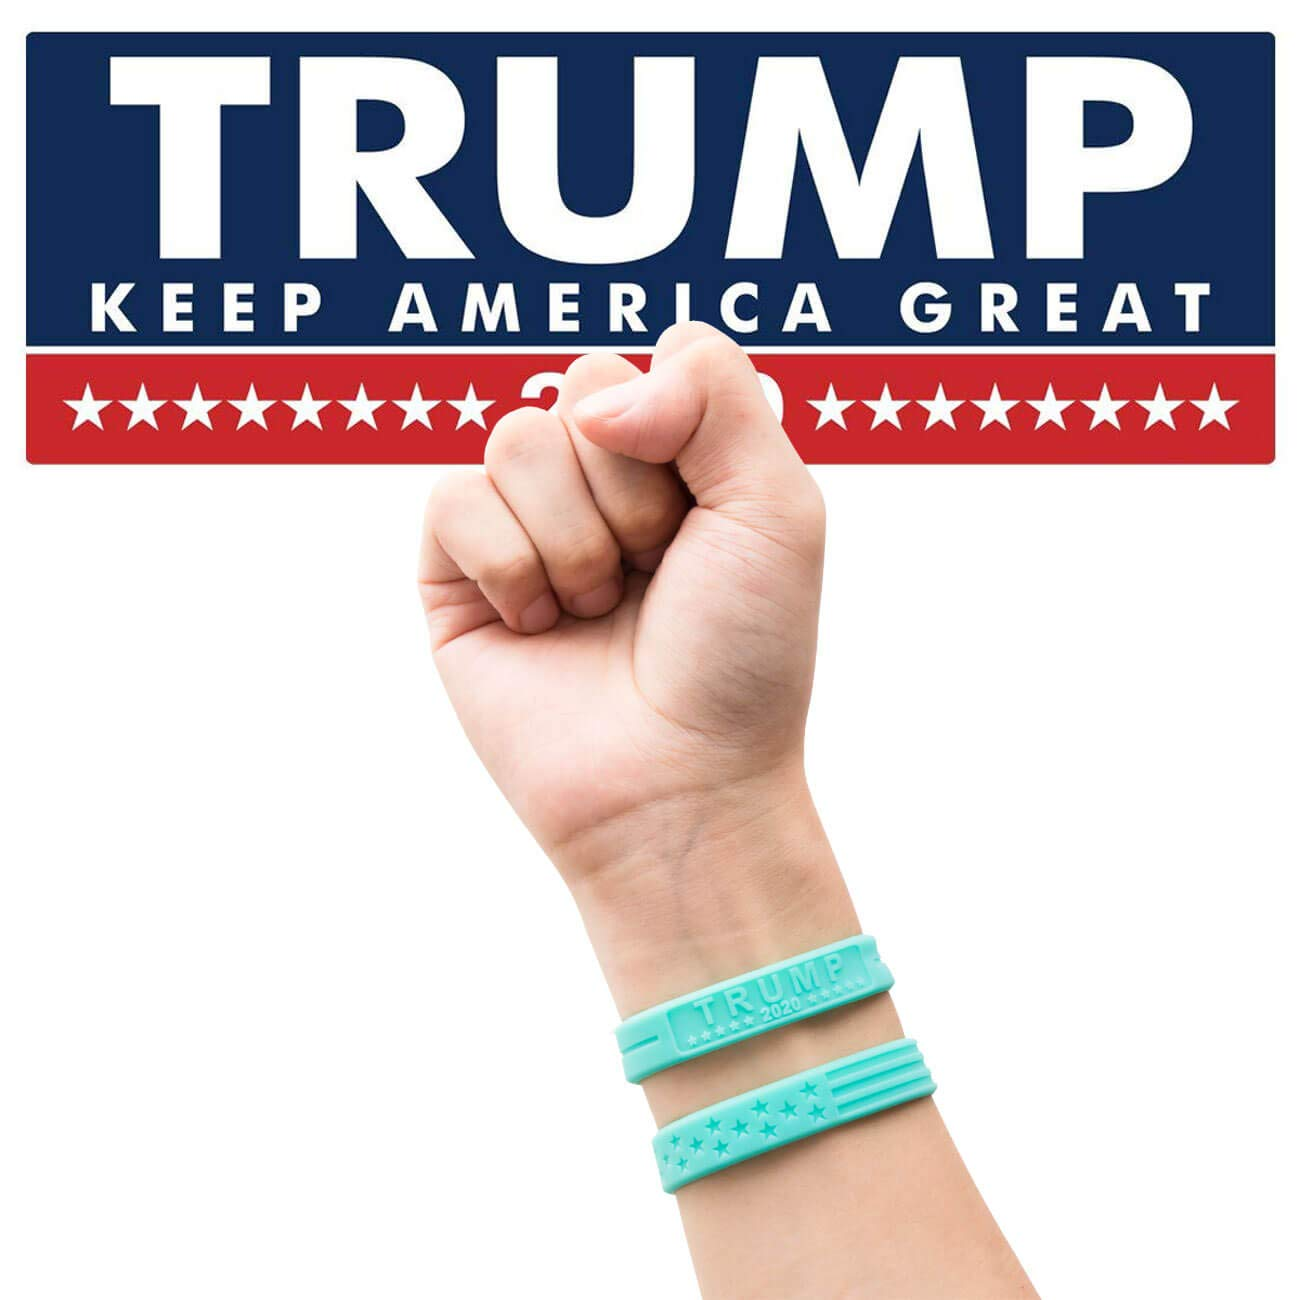 Rubber Motivational Wristbands Sainstone Trump Keep America Great with American Flag for President 2020 Silicone Bracelets with Durable Debossed Text Adults Gifts for Teens Men Women